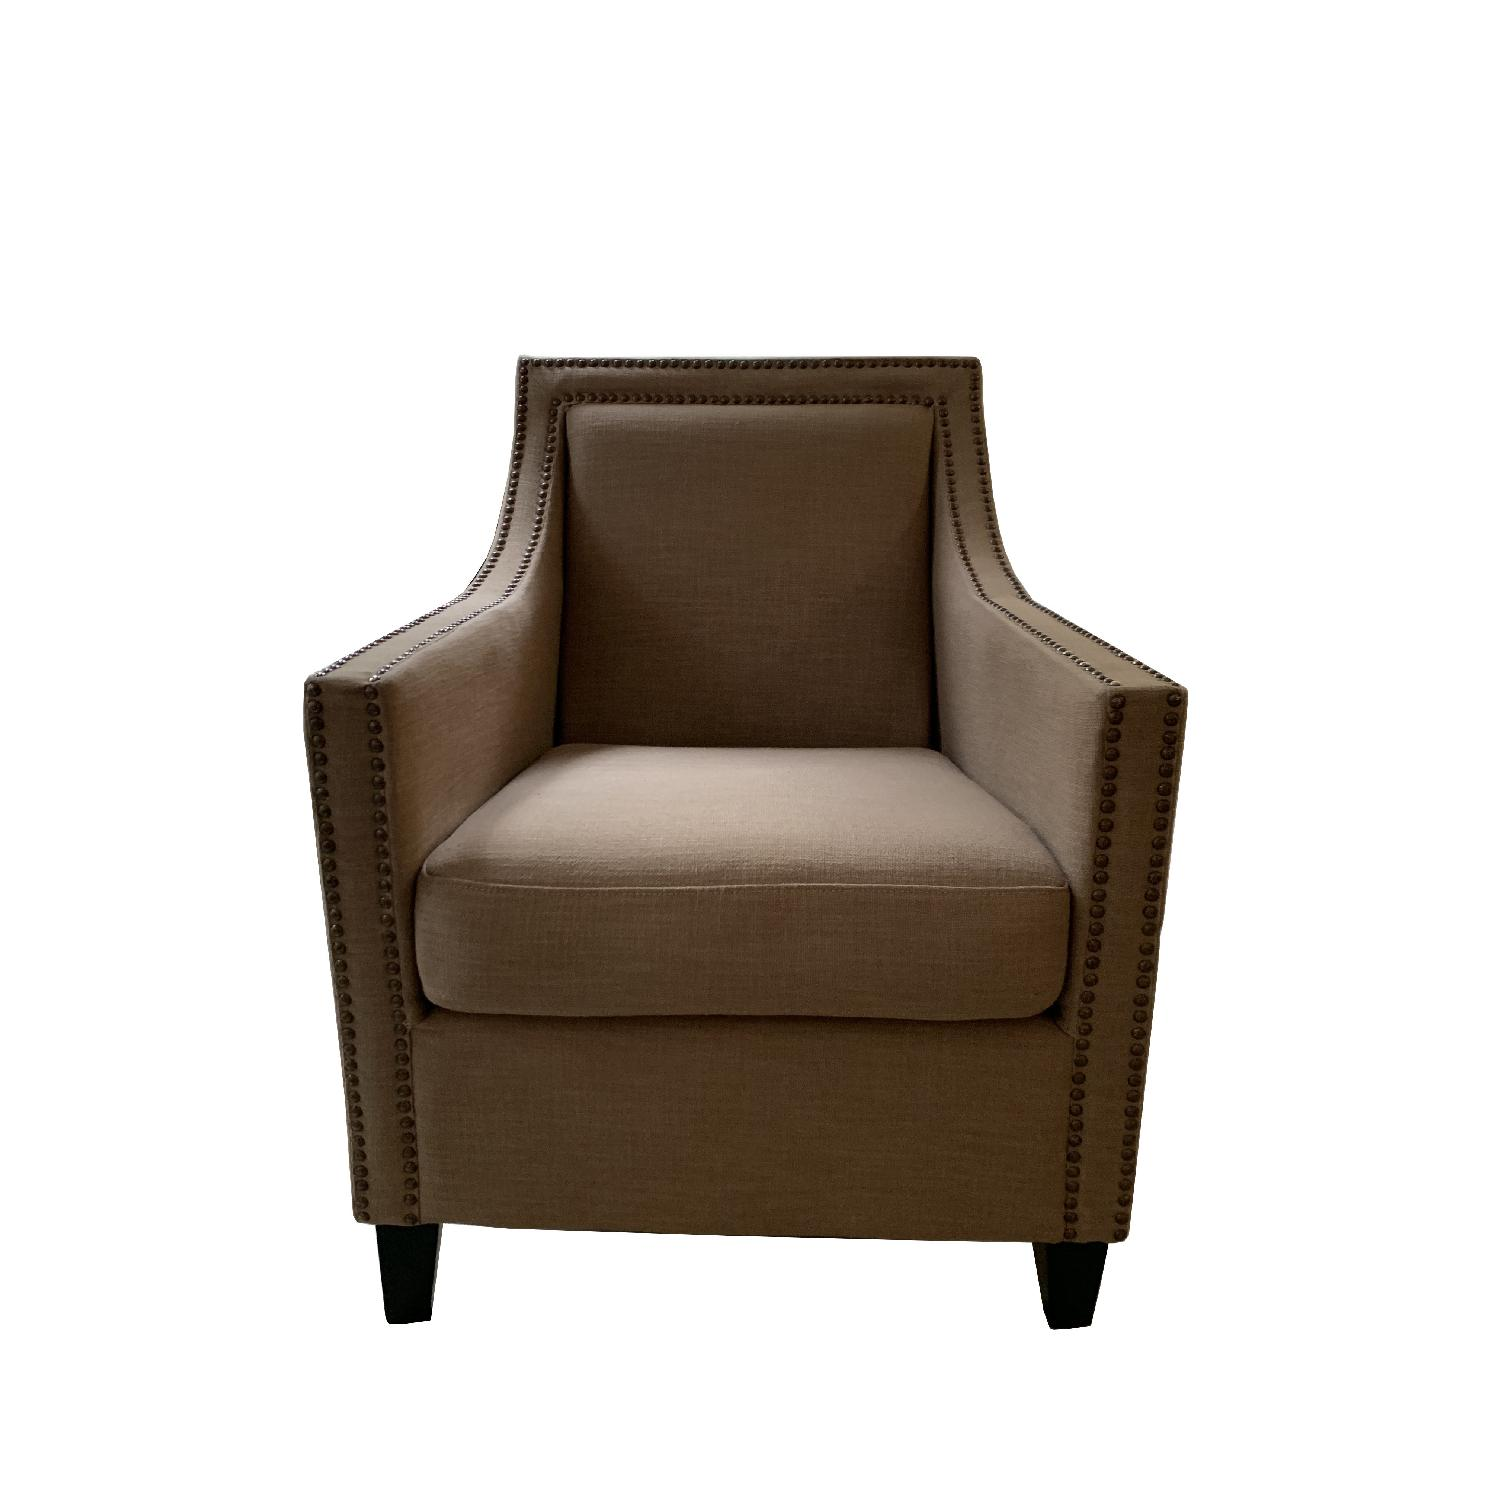 Taupe Armchairs w/ Nailheads - image-0